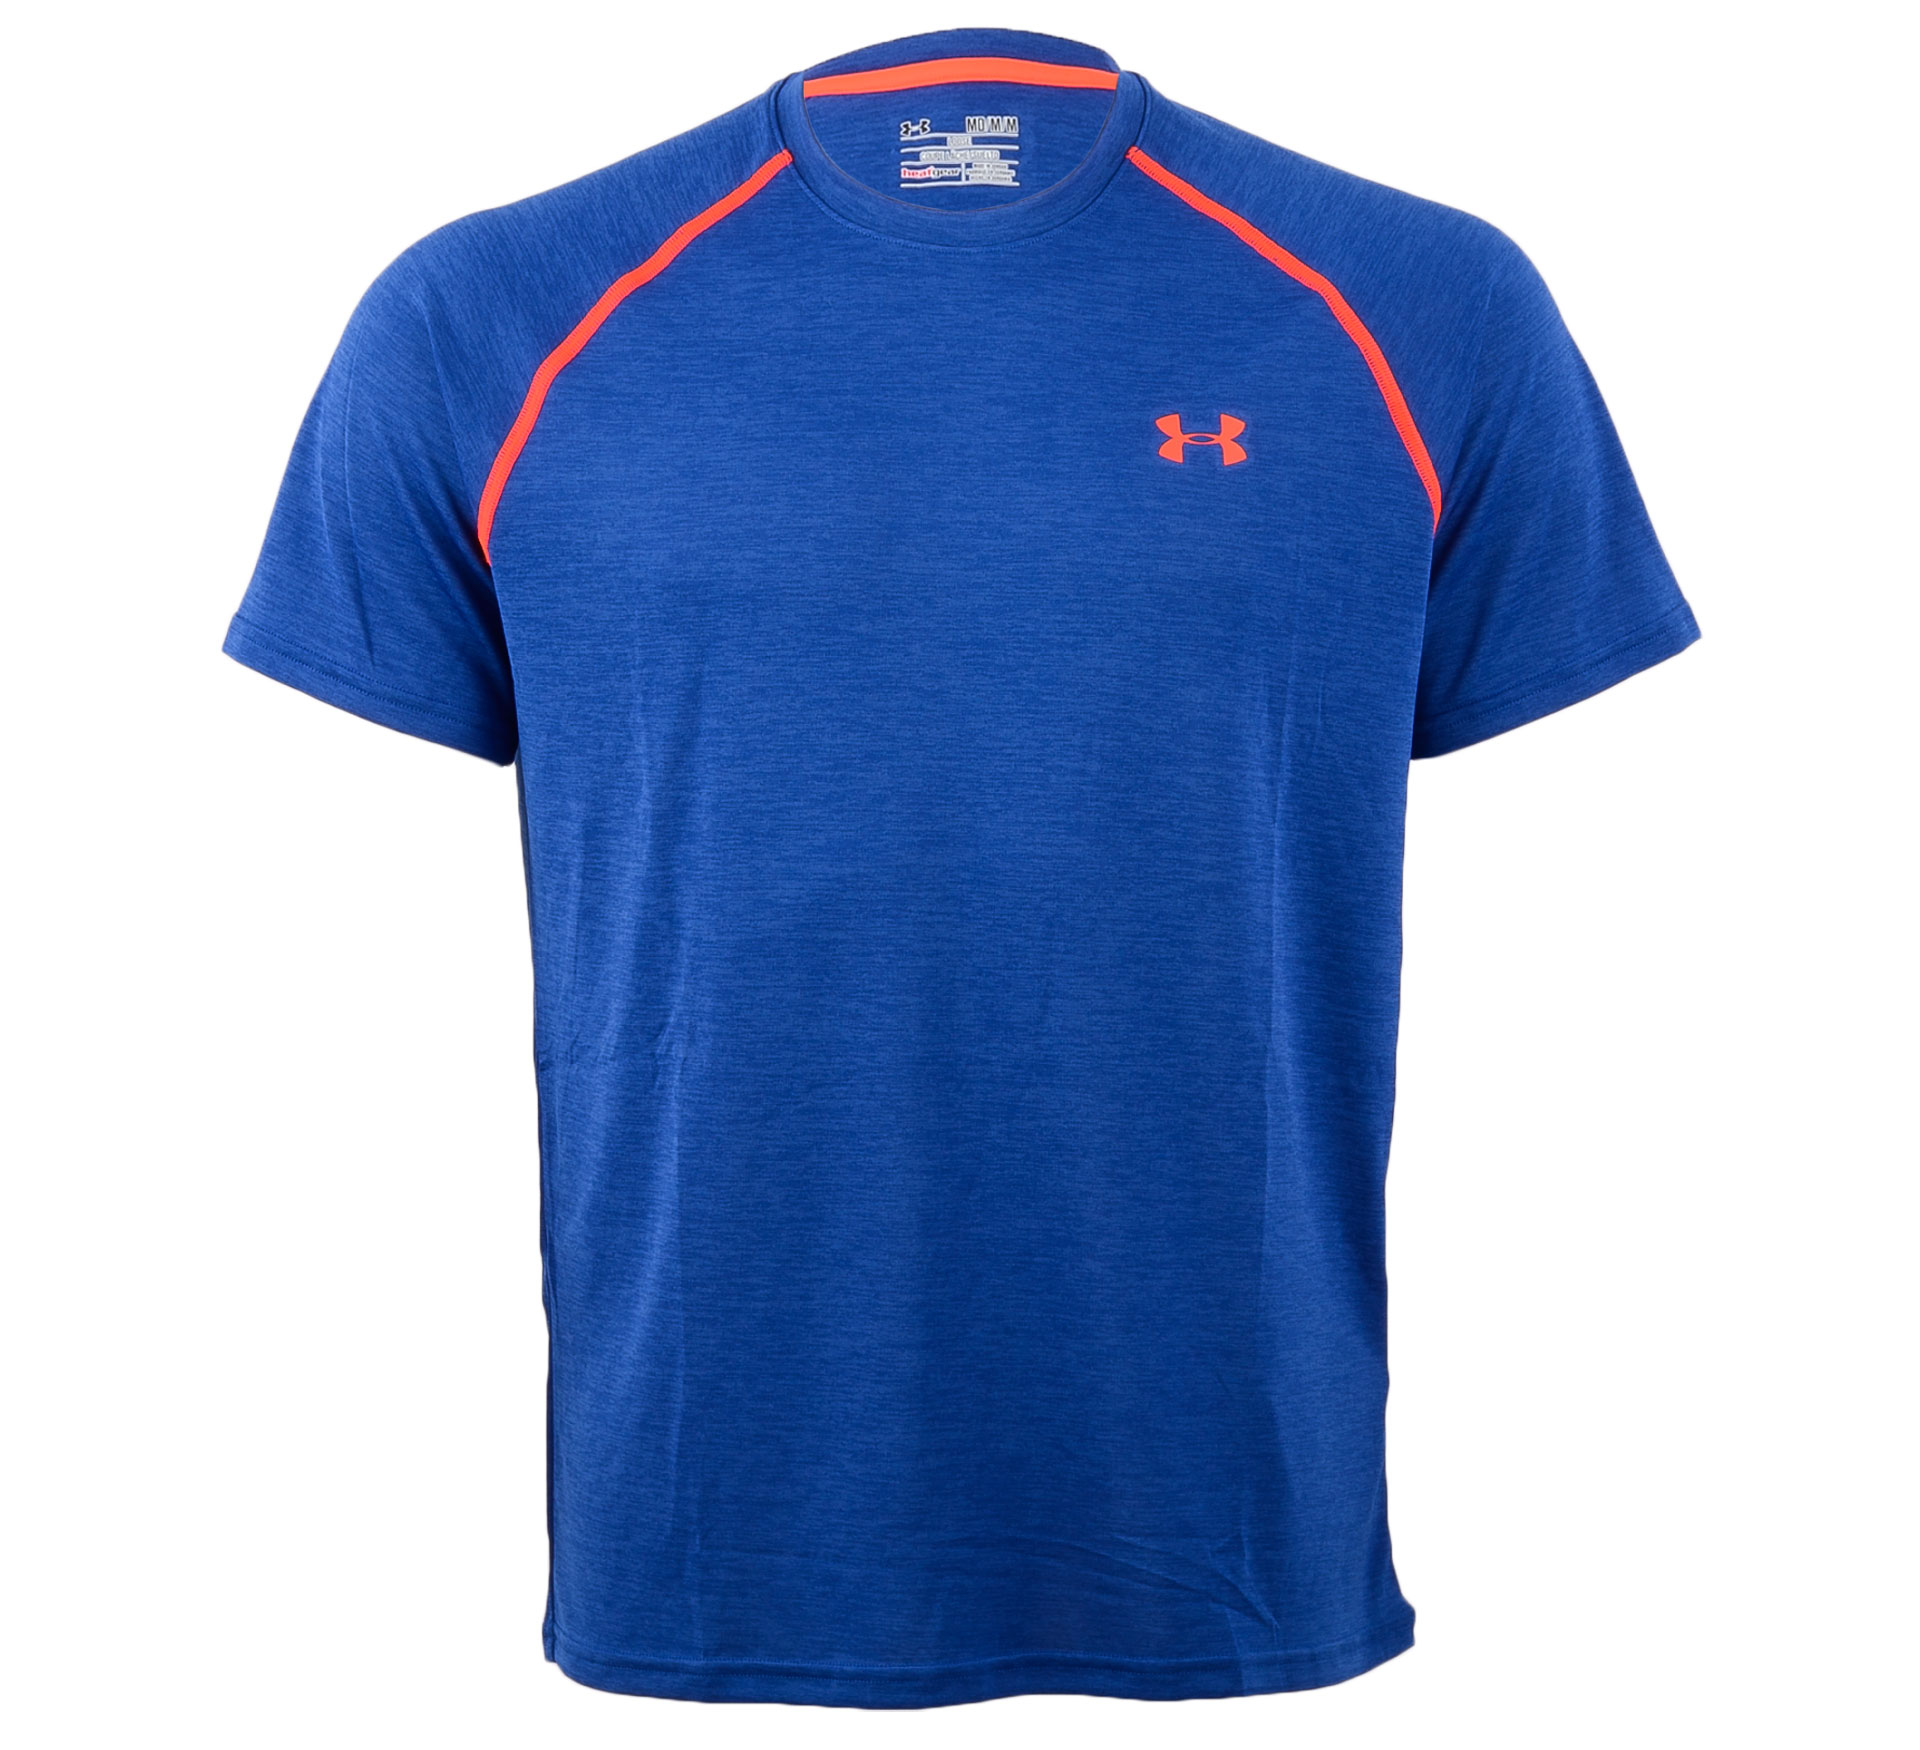 Under Armour HeatGear Loose Tech T-shirt blauw - rood